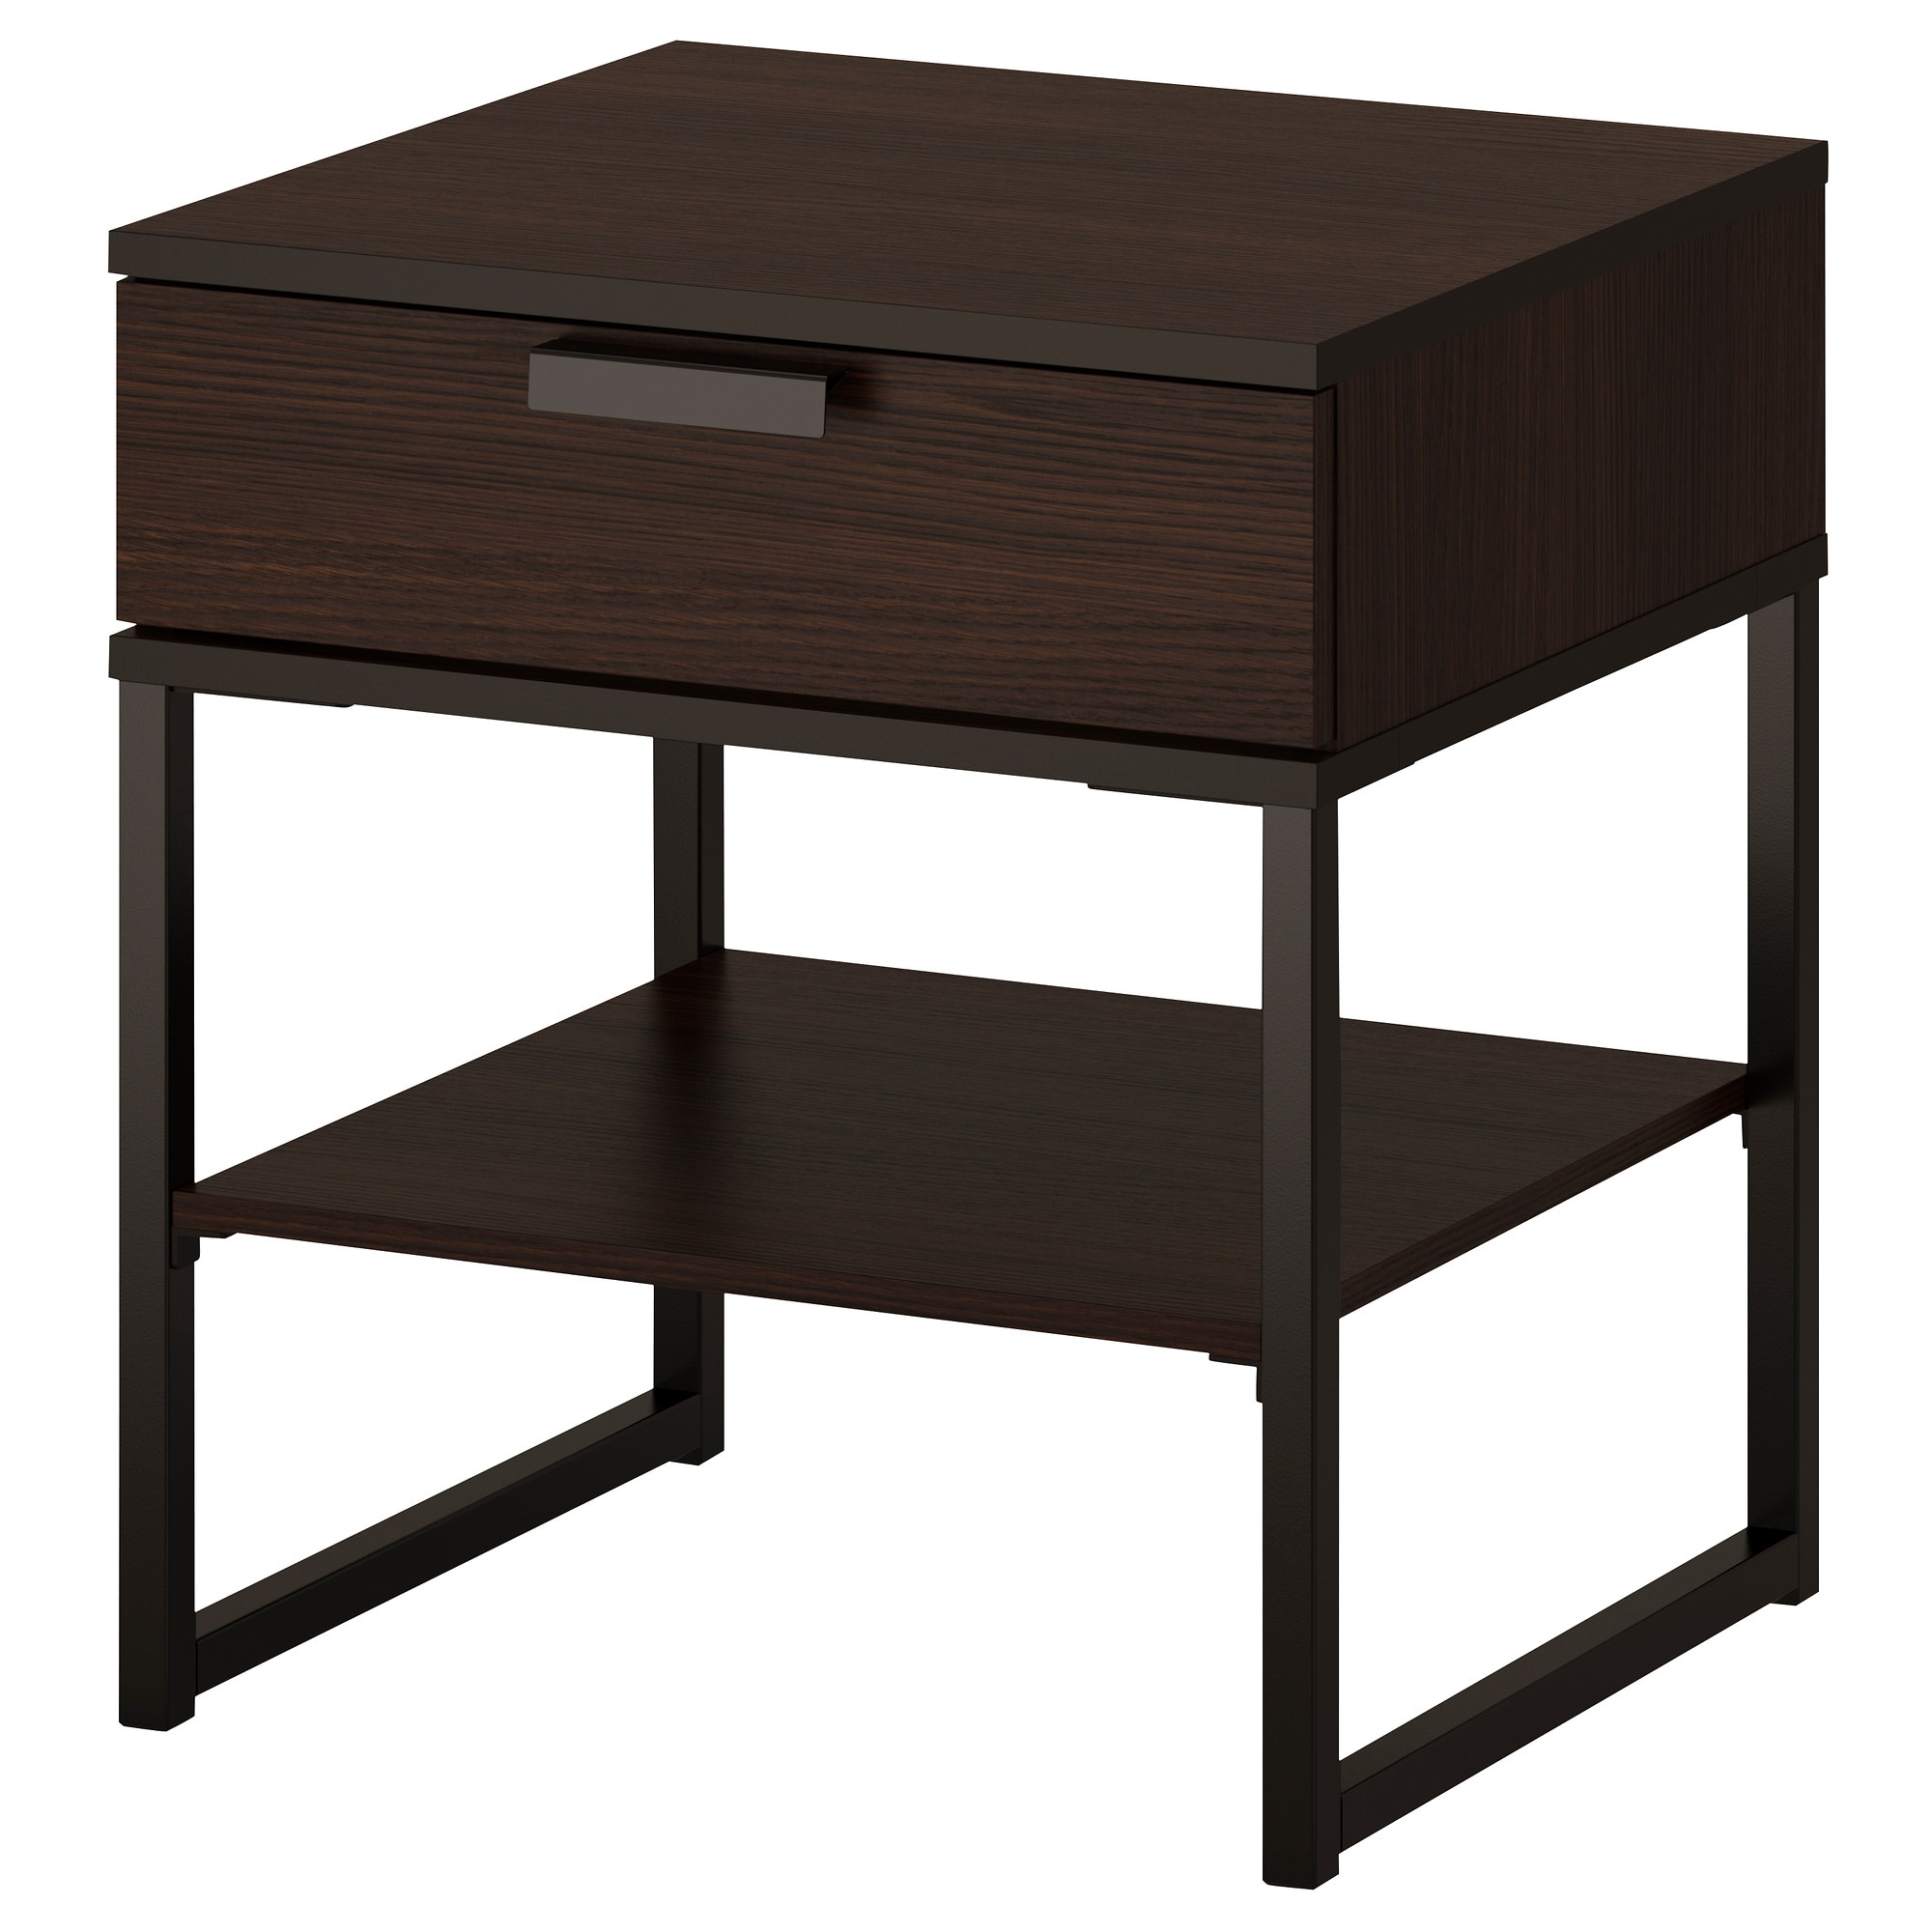 trysil chevet ikea - Ikea Table De Nuit